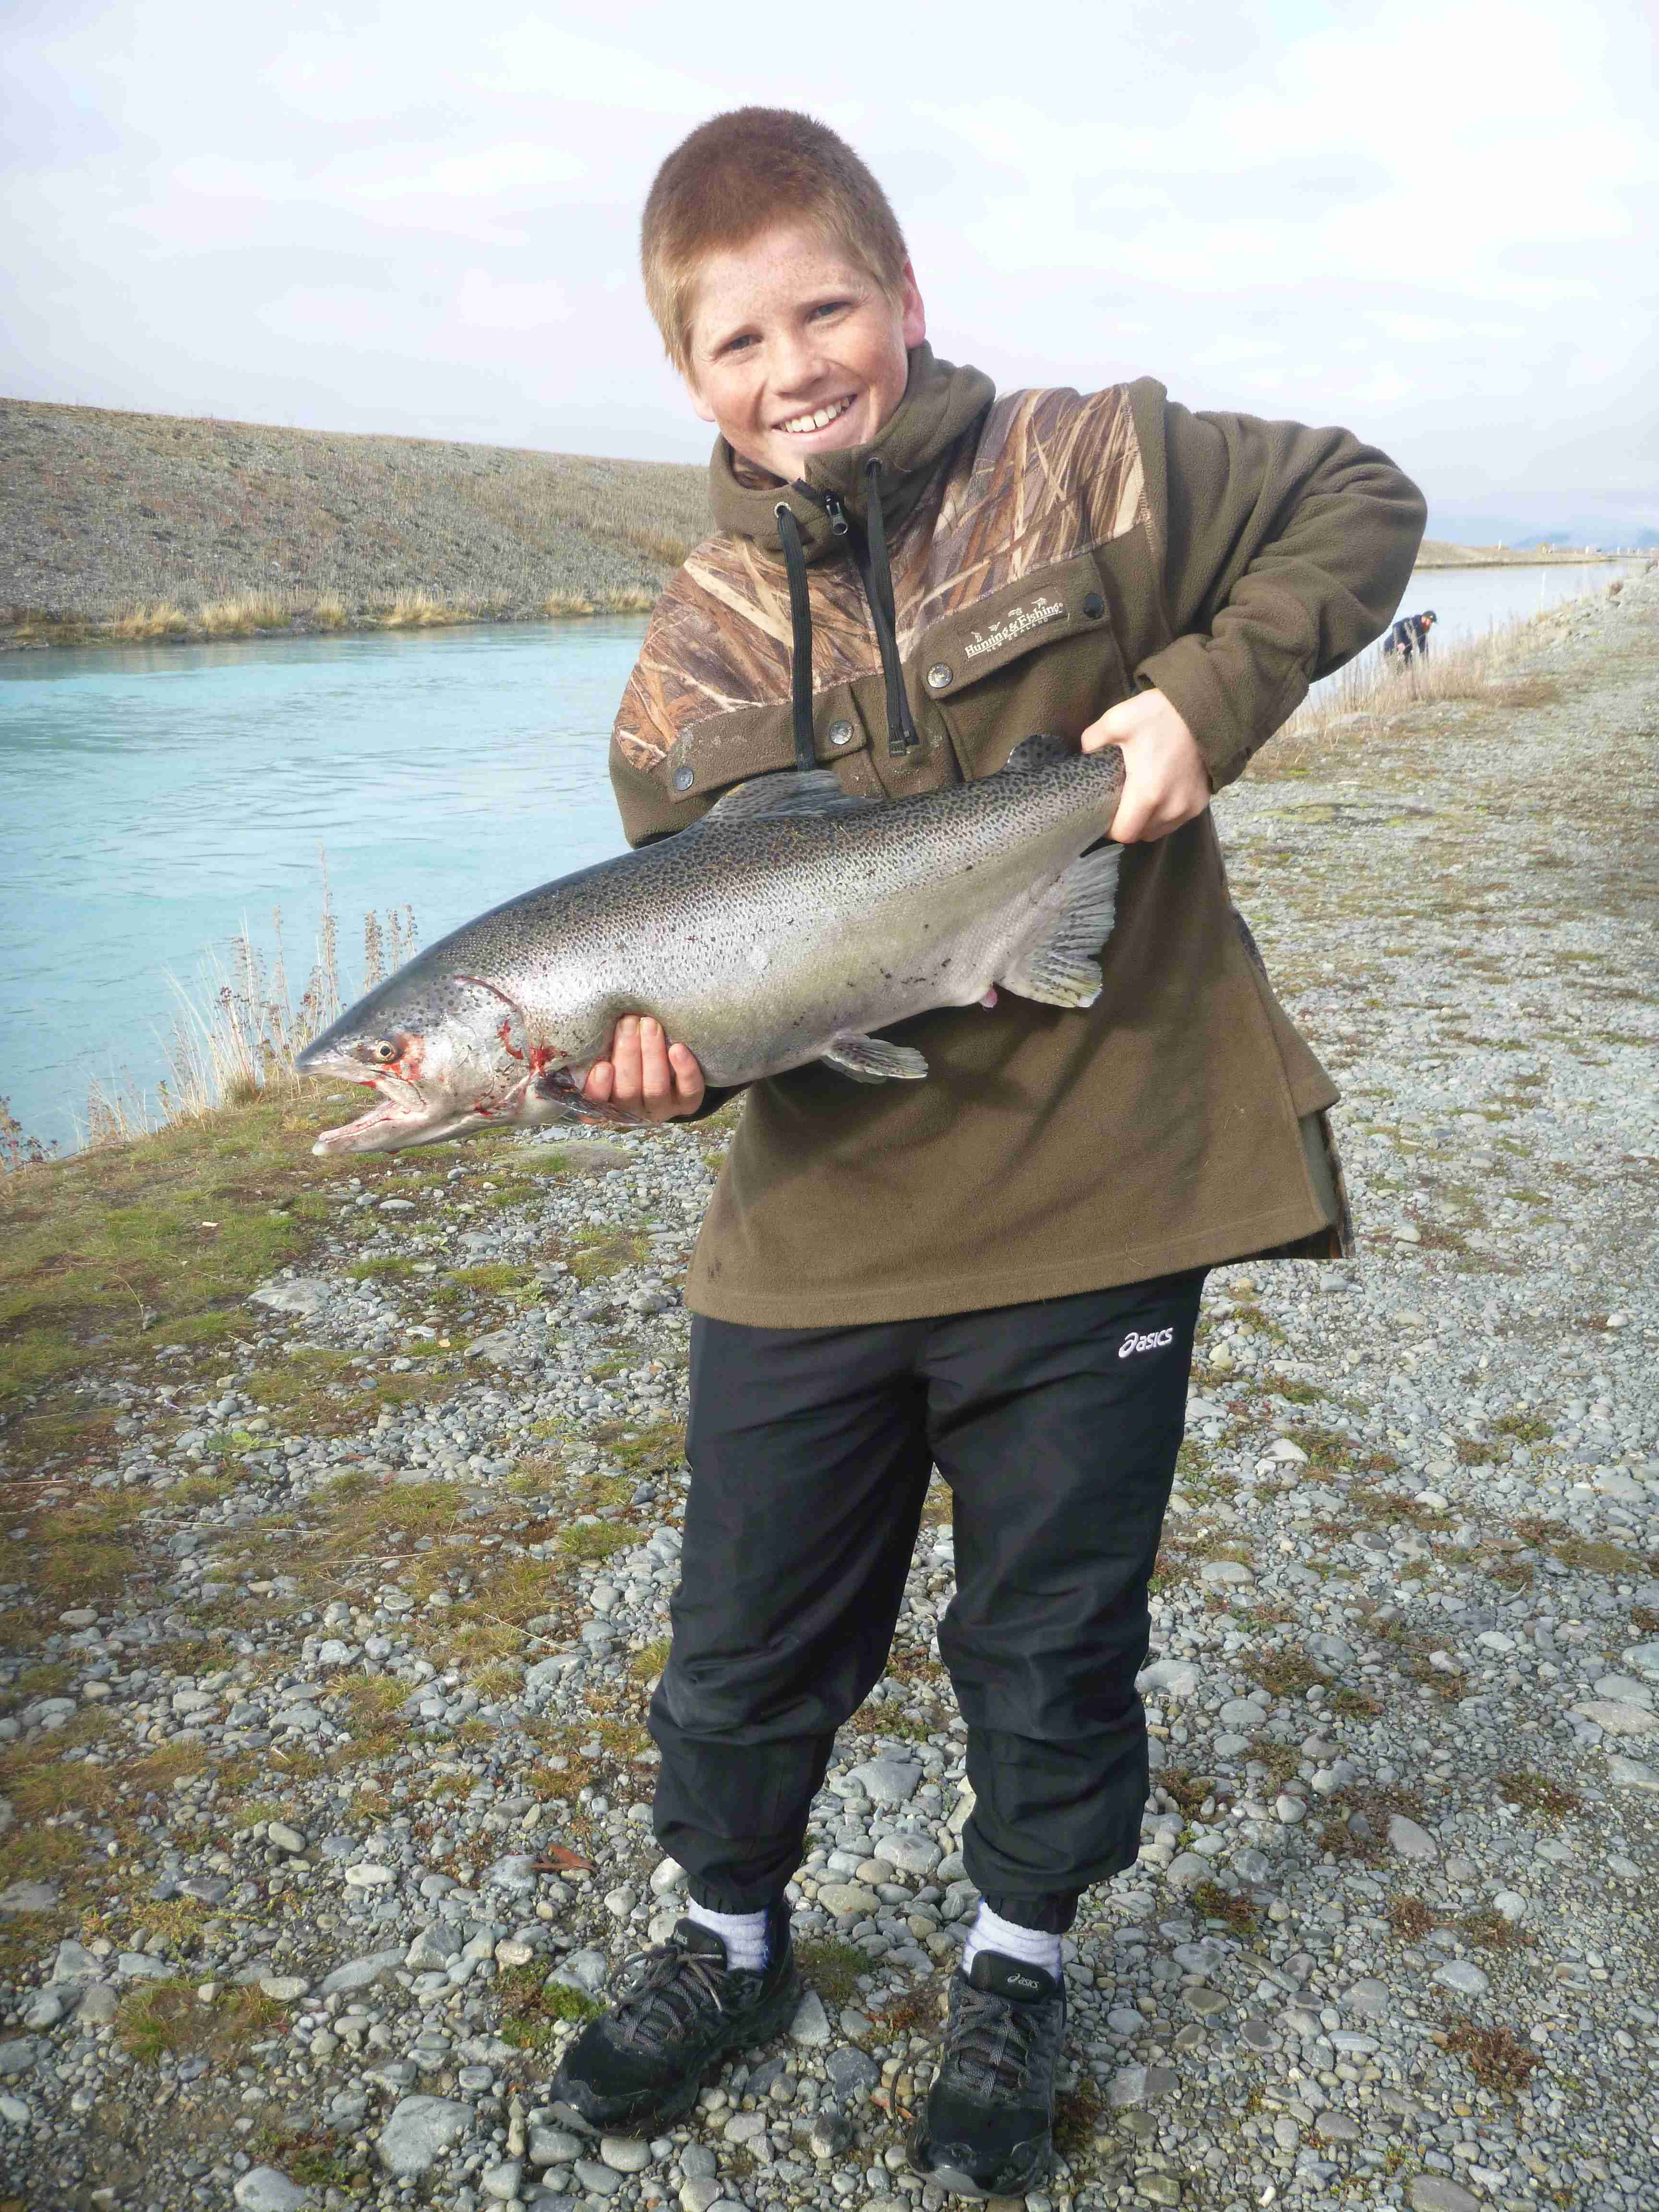 WFR1819.59 Will Pierce caught a 9lb salmon at the Tekapo Canal on Easter Weekend